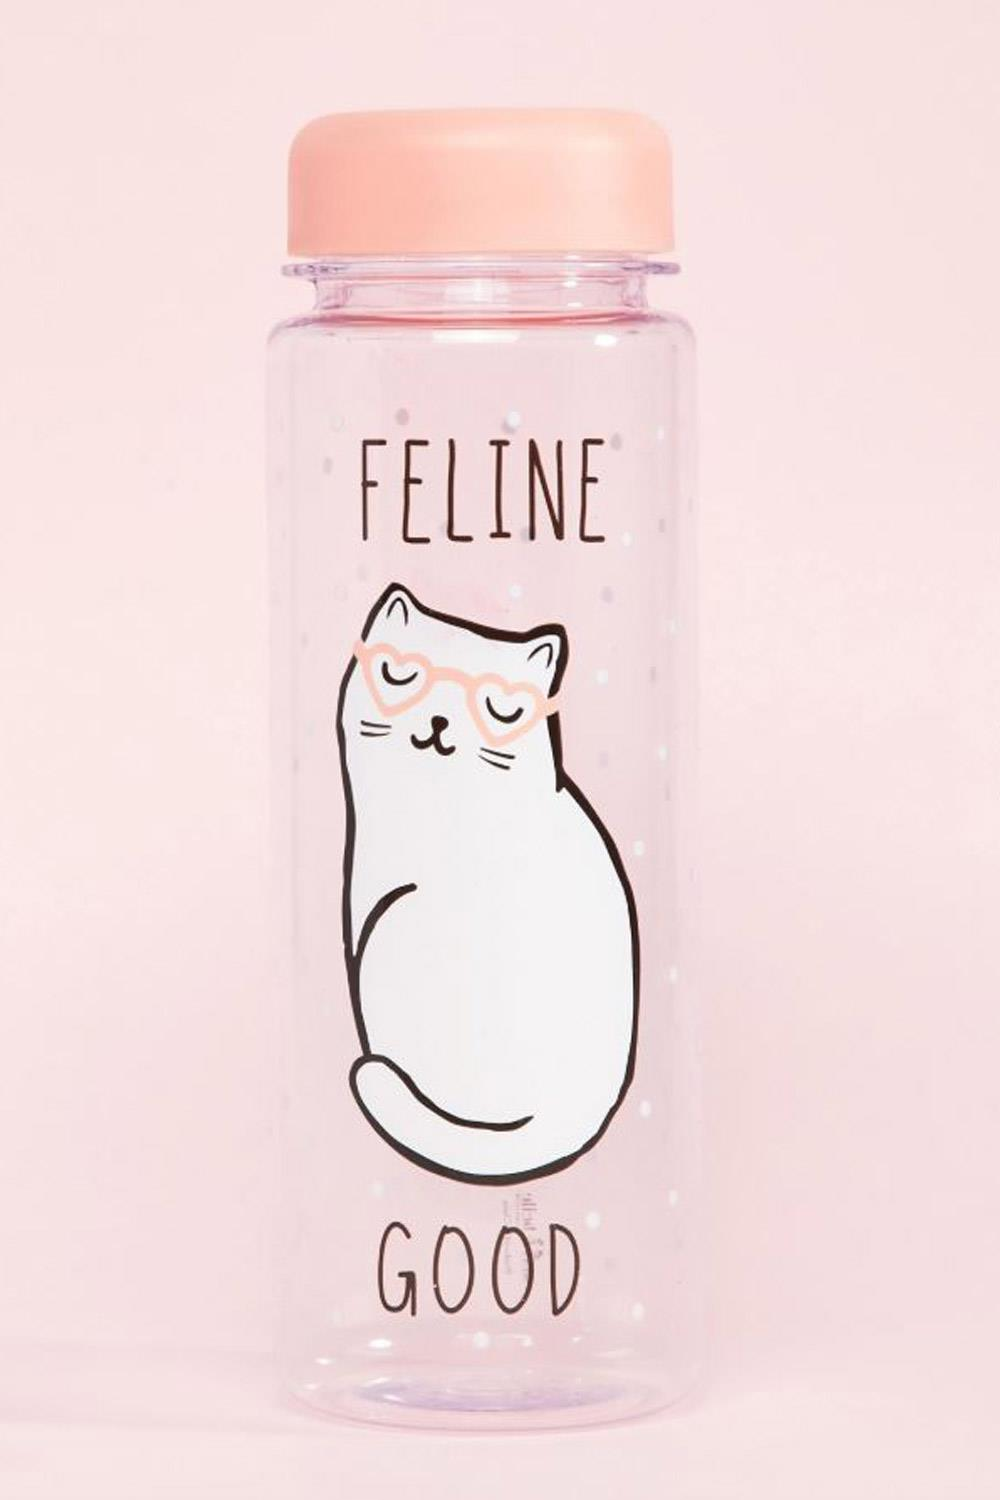 gatos asos Botella de agua feline good cat de Sass & Belle, 8,49€